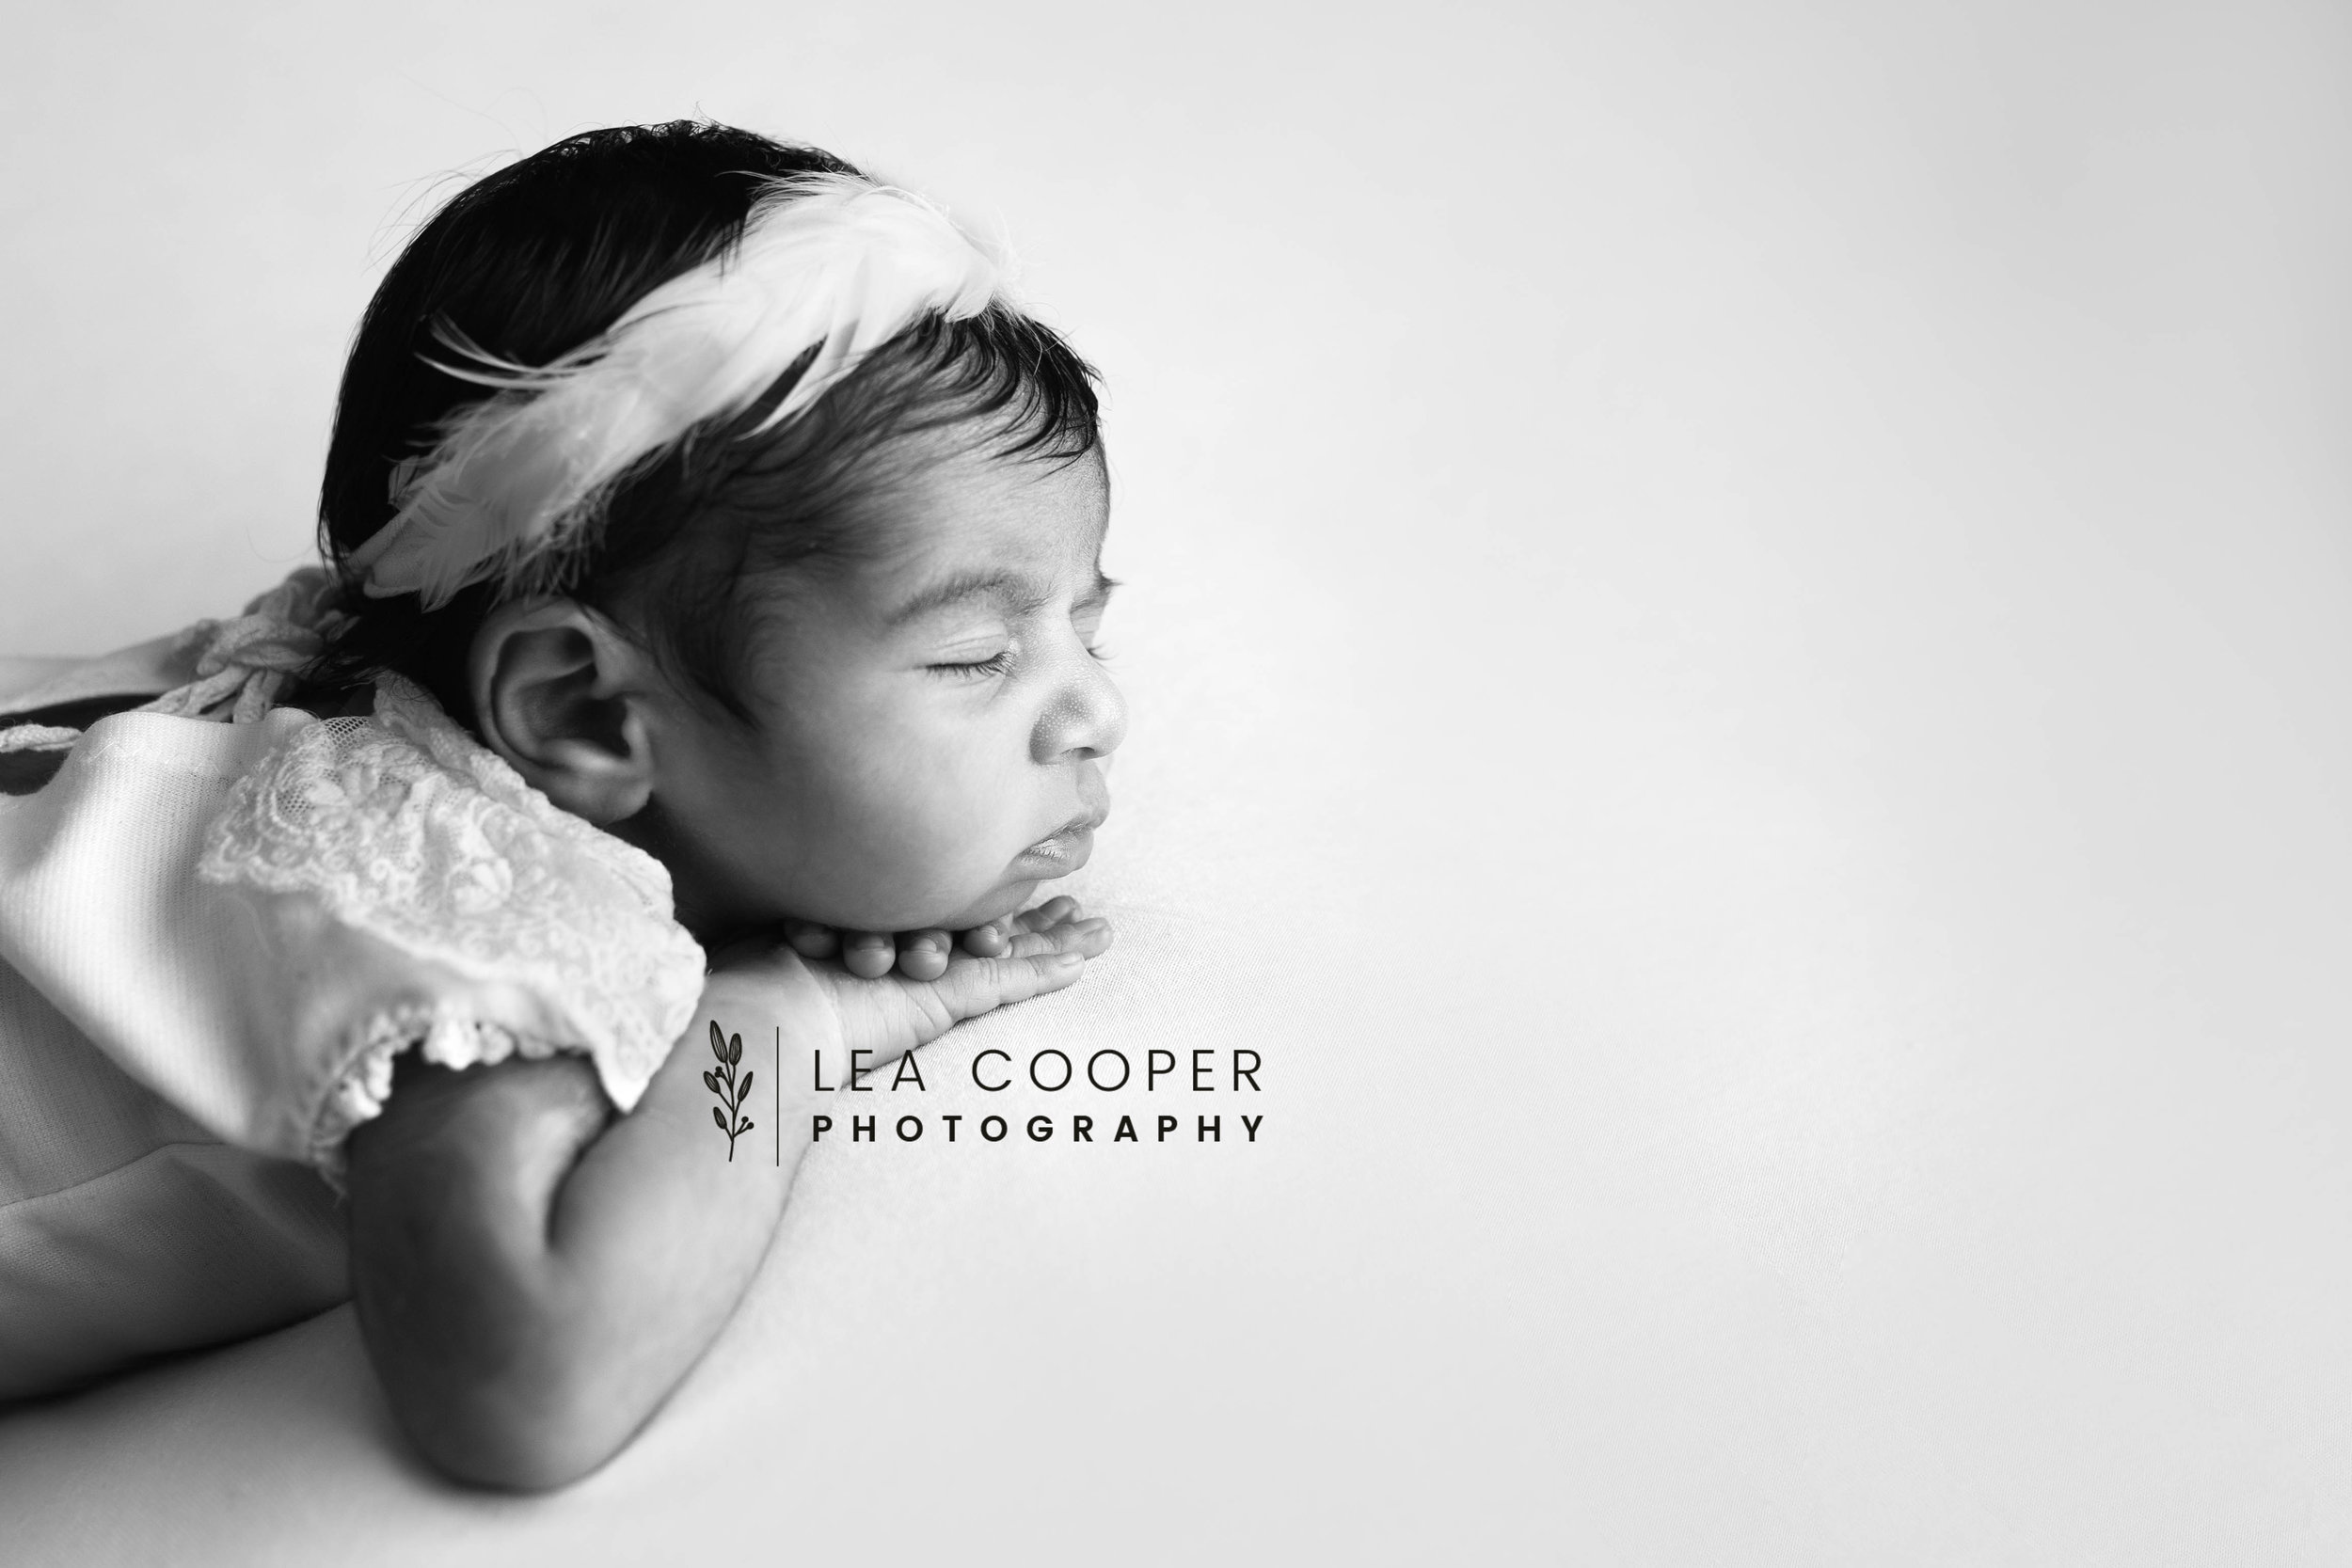 LEA-COOPER-PHOTOGRAPHY-NEWBORN-PHOTOGRAPHER-BABY-PHOTOGRAPHY-NEWBORN-SESSION-WILLENHALL-WOLVERHAMPTON-WEST-MIDLANDS-UK-6.jpg